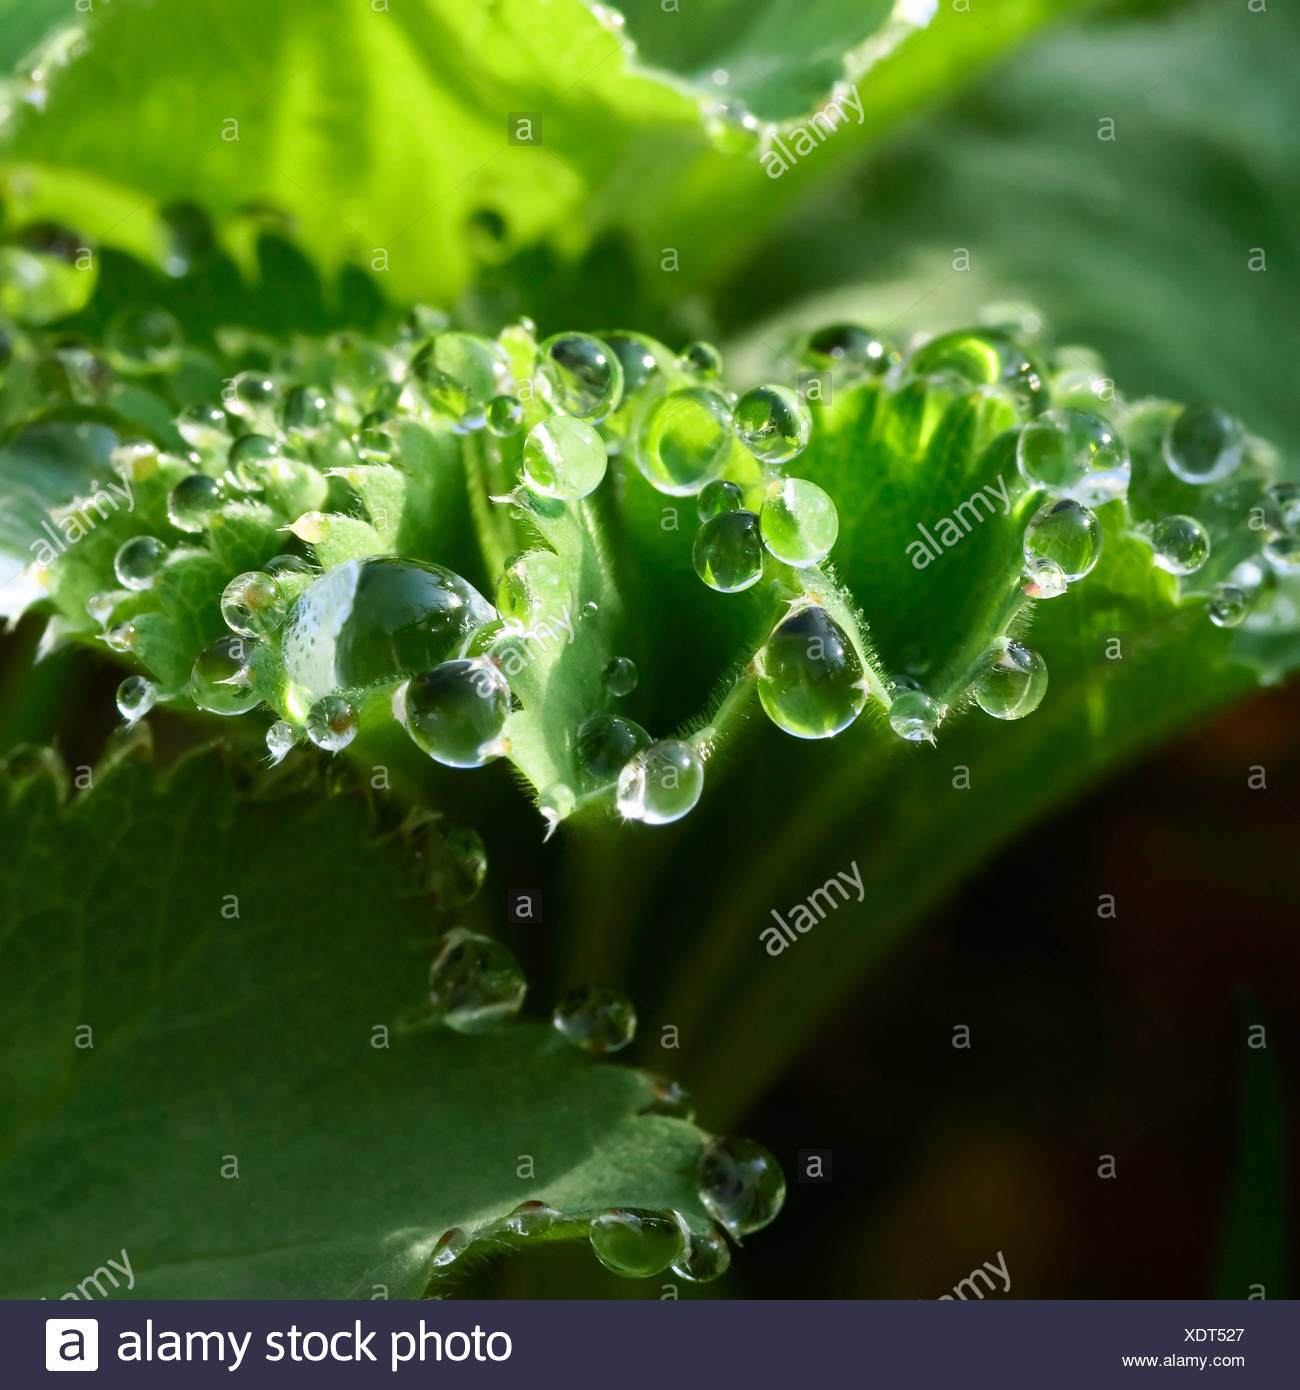 Lady's Mantle (Alchemilla vulgaris) after a rain shower - Stock Image